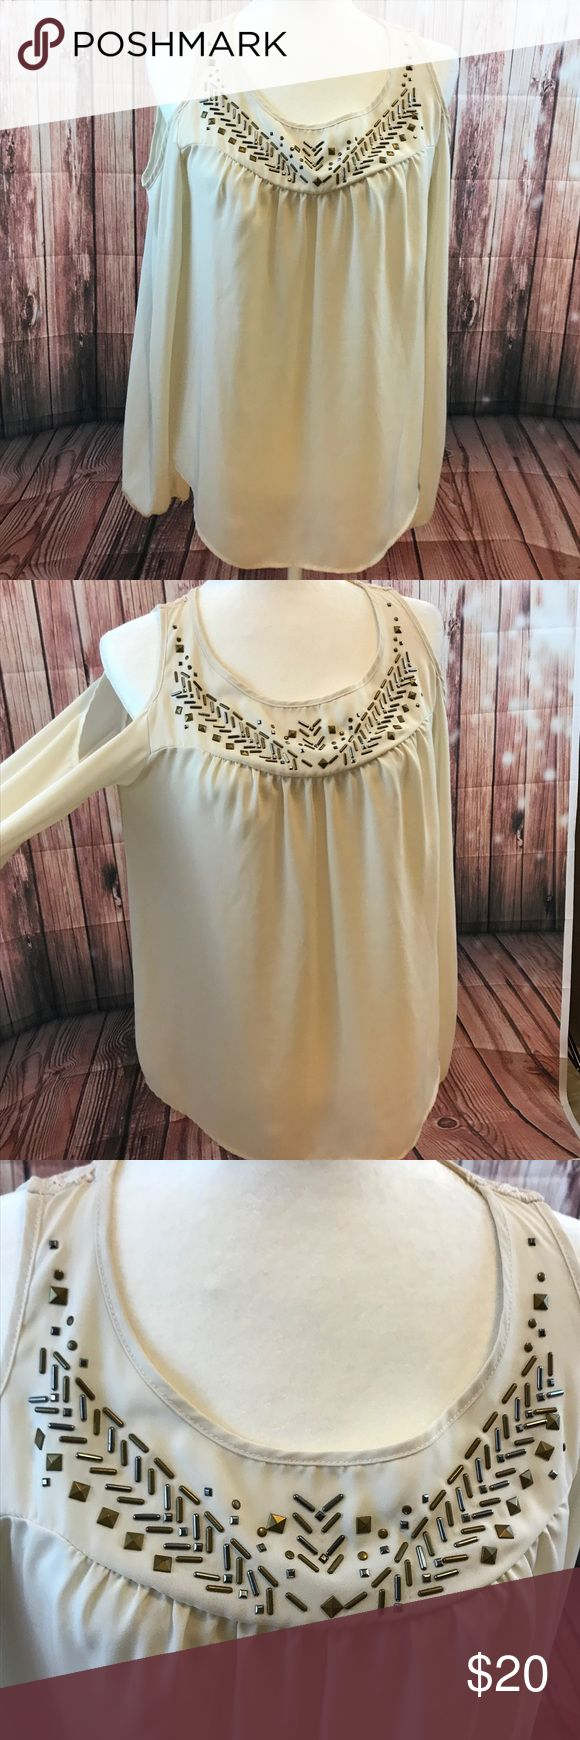 Xhileration Lg cold shoulder sheer lace aztec top Xhileration tan/ cream sheer cold shoulder long sleeve top with aztec style beading on top of front and lace on top of back. Xhilaration Tops